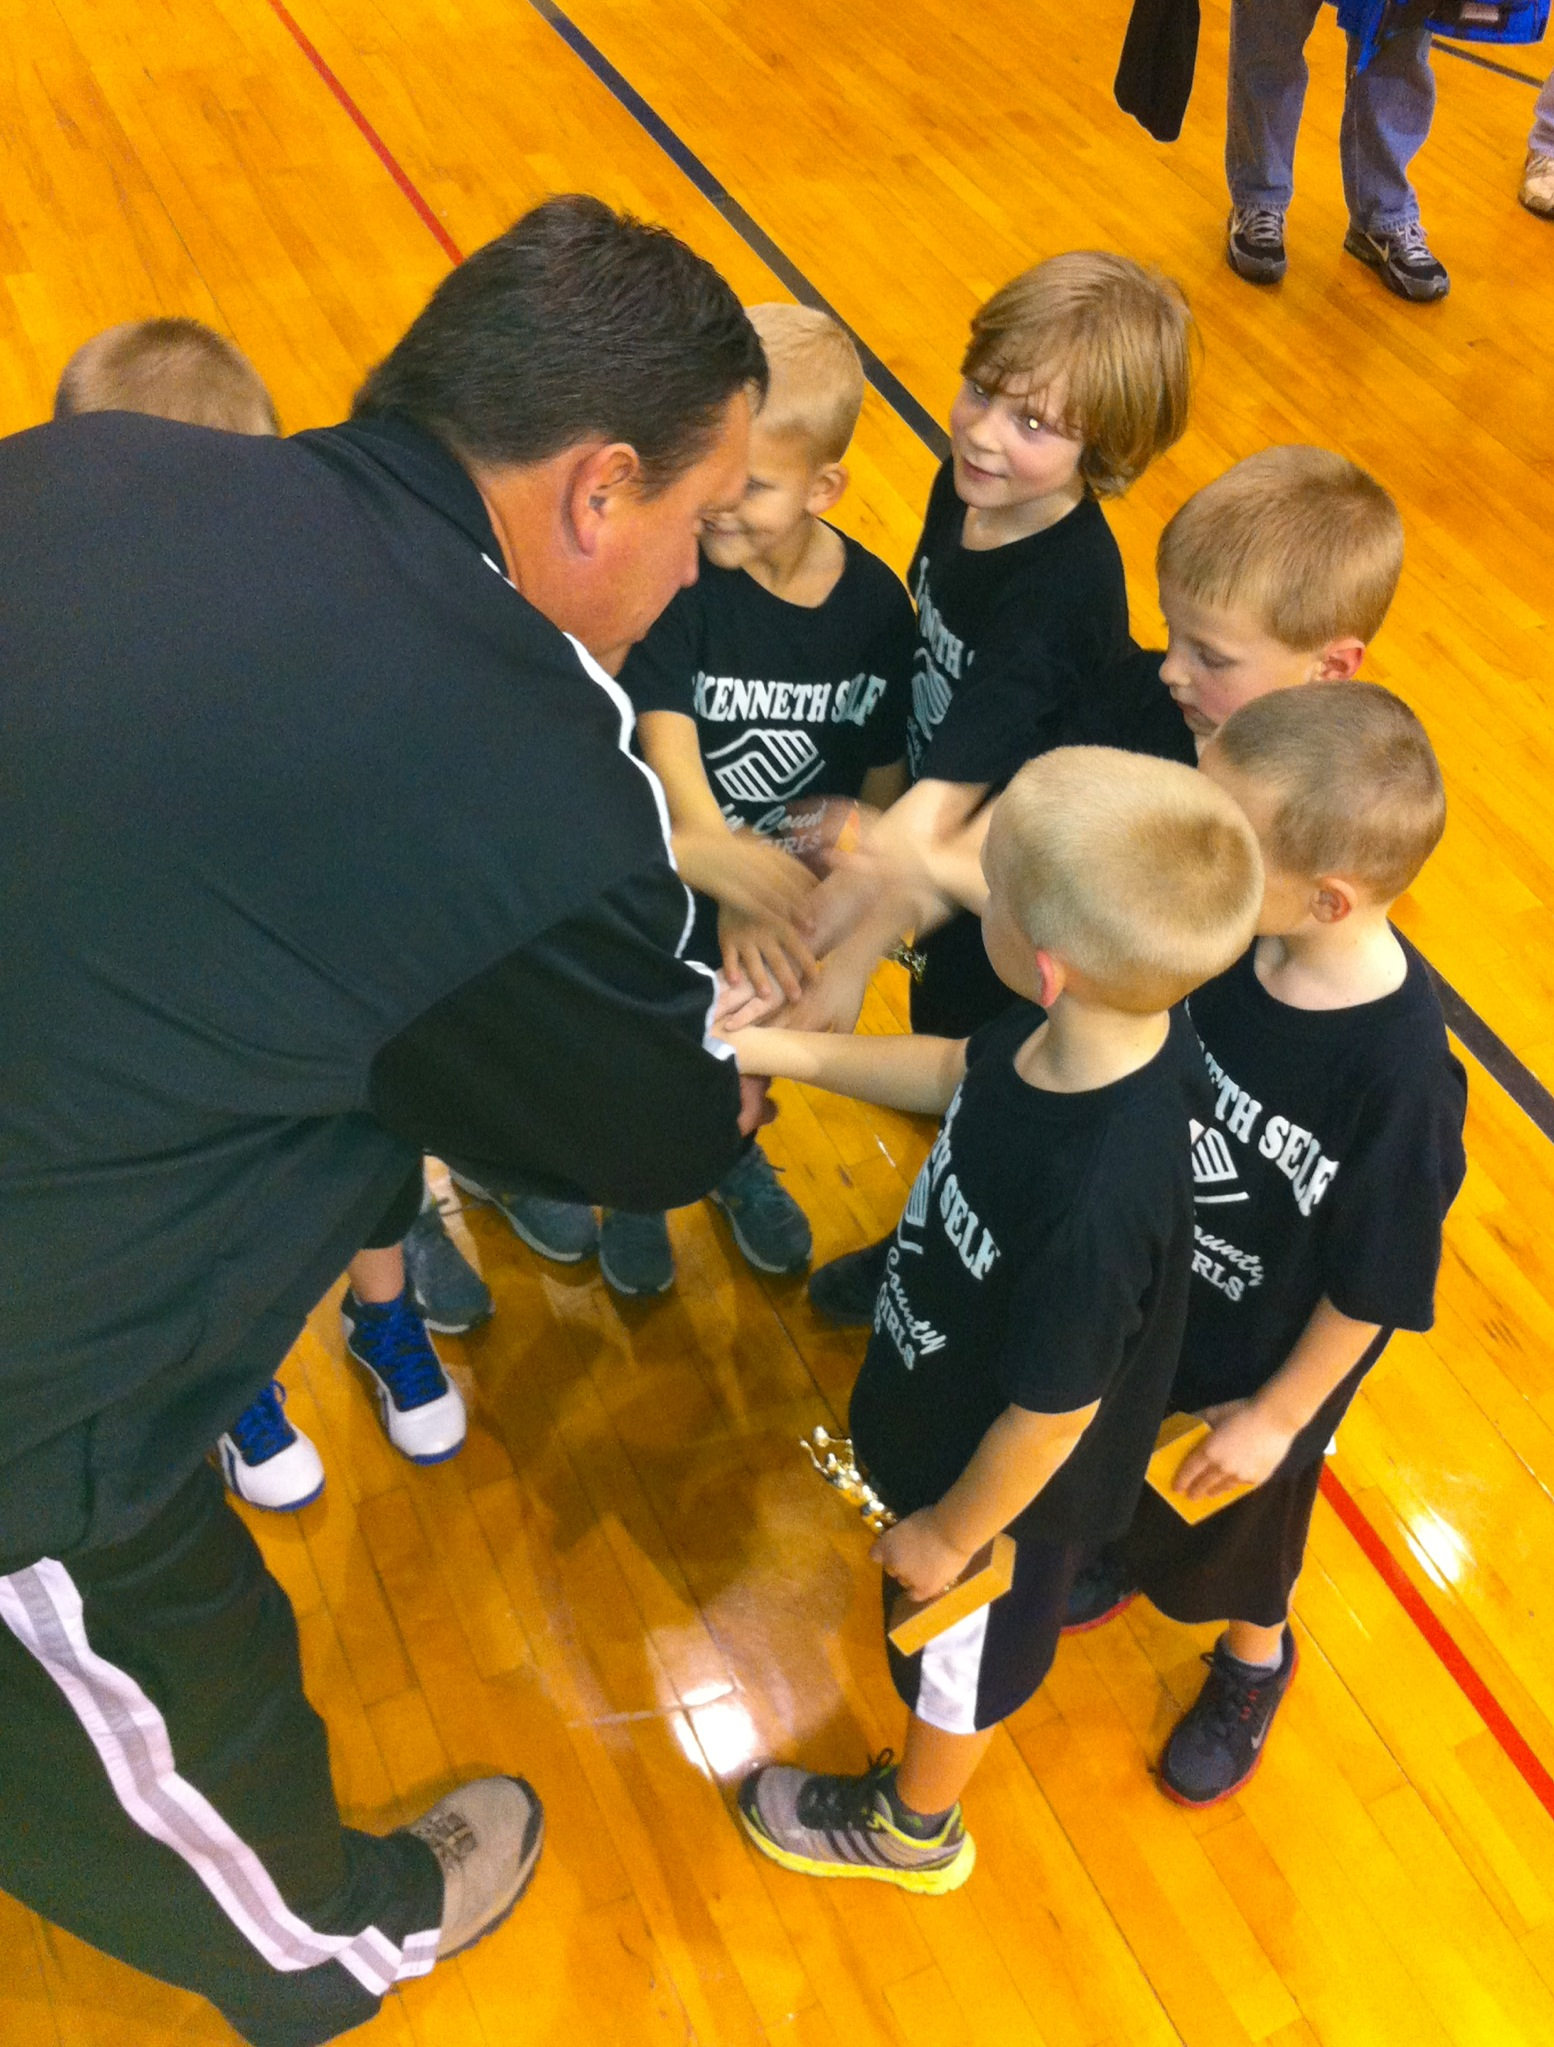 Shelbyville Boys Club 6 & Under Basketball Team 2012